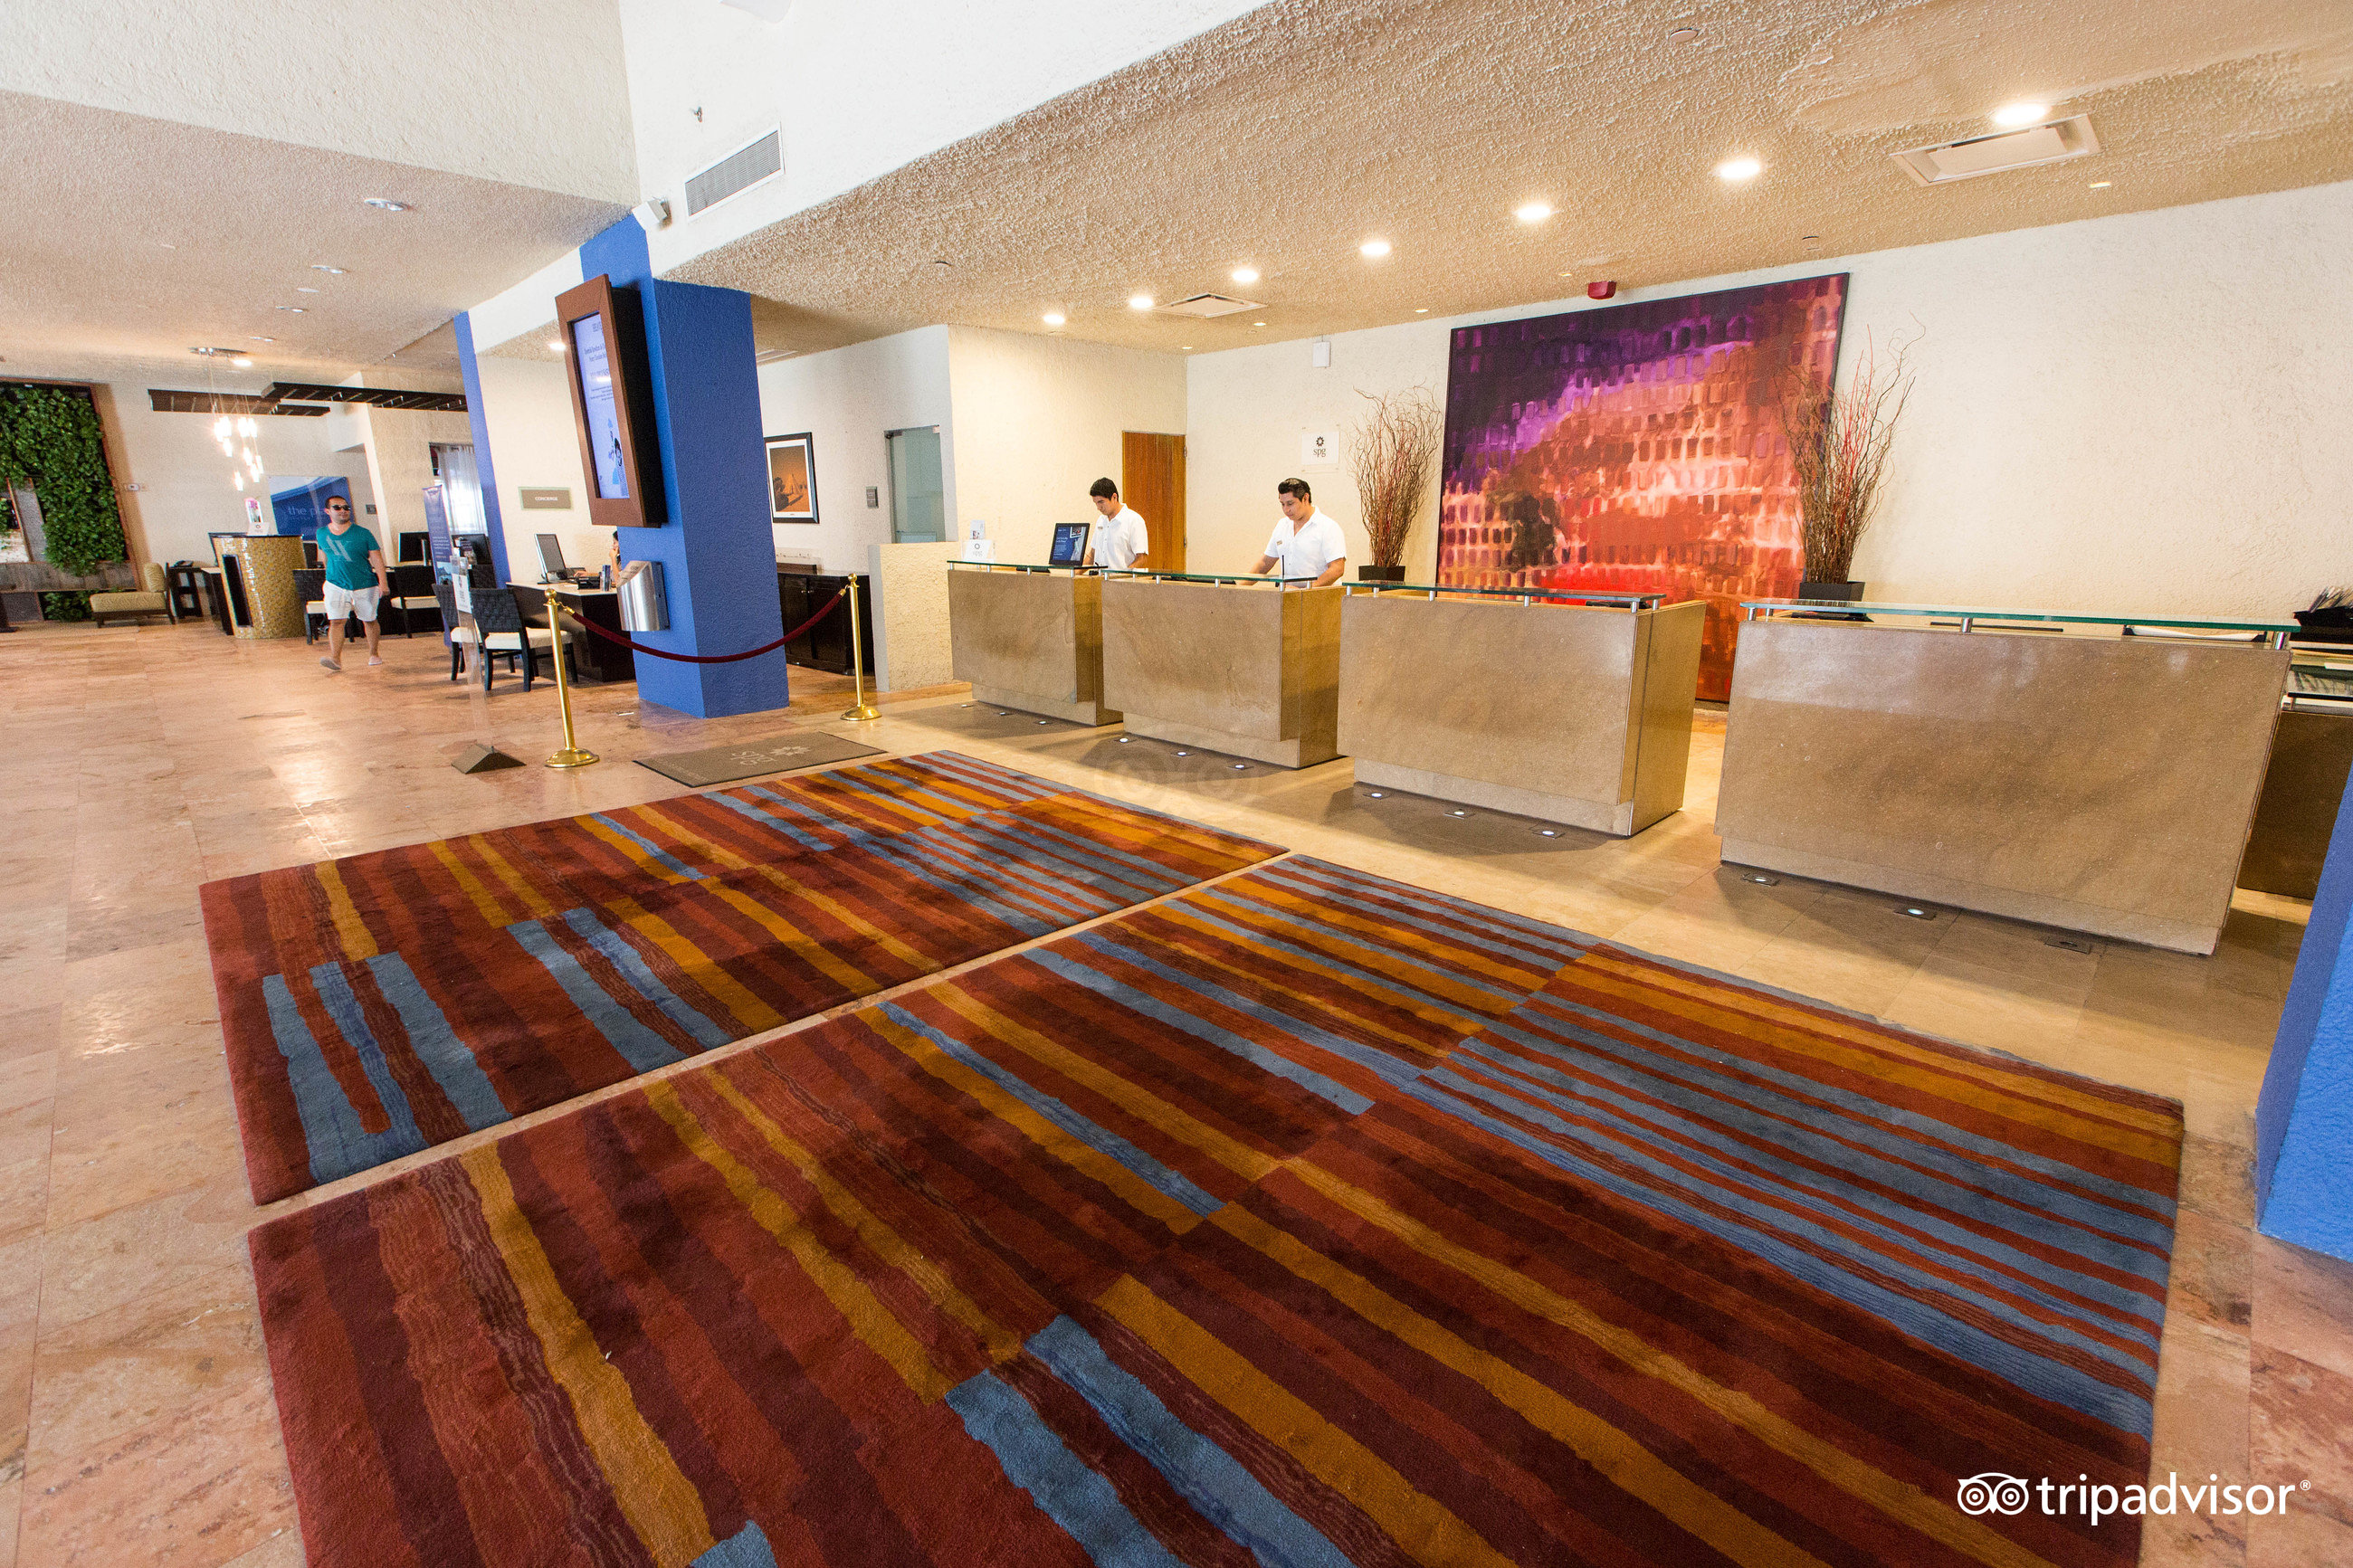 Cancun an all suites resort 2017 review family vacation critic - Cancun An All Suites Resort 2017 Review Family Vacation Critic 33